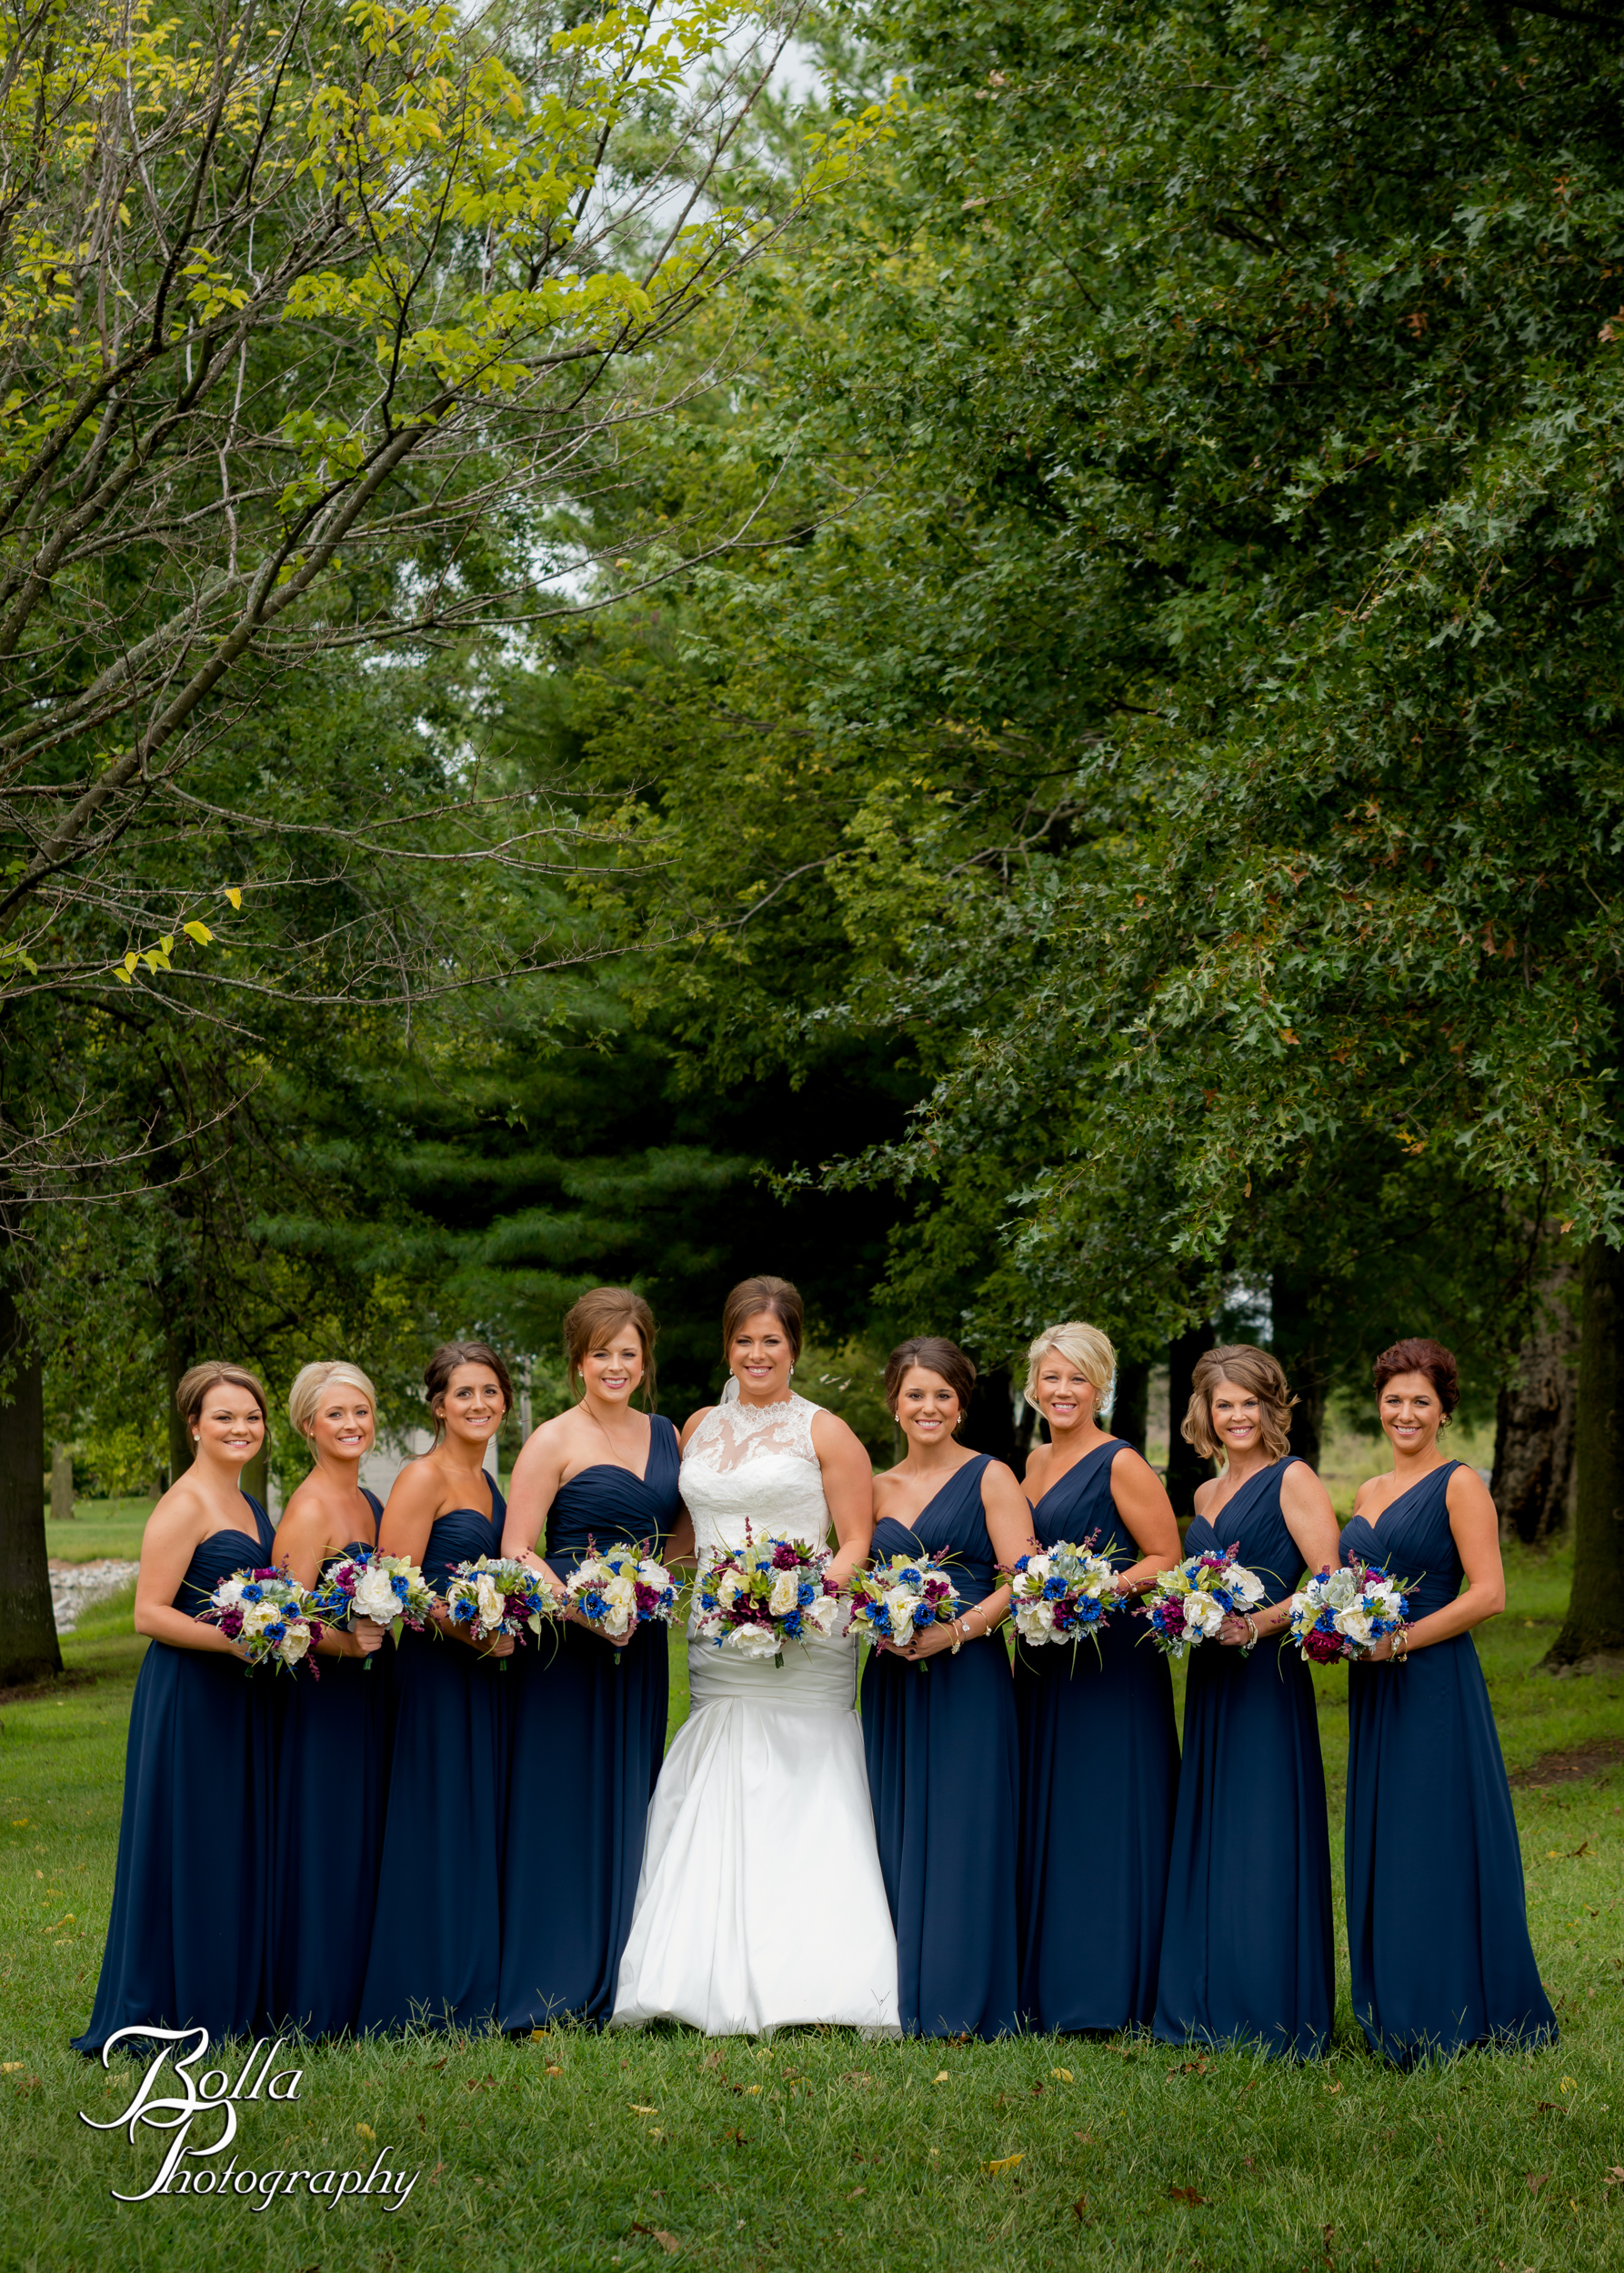 Bolla_photography_edwardsville_wedding_photographer_st_louis_weddings_Heinzmann-0115.jpg